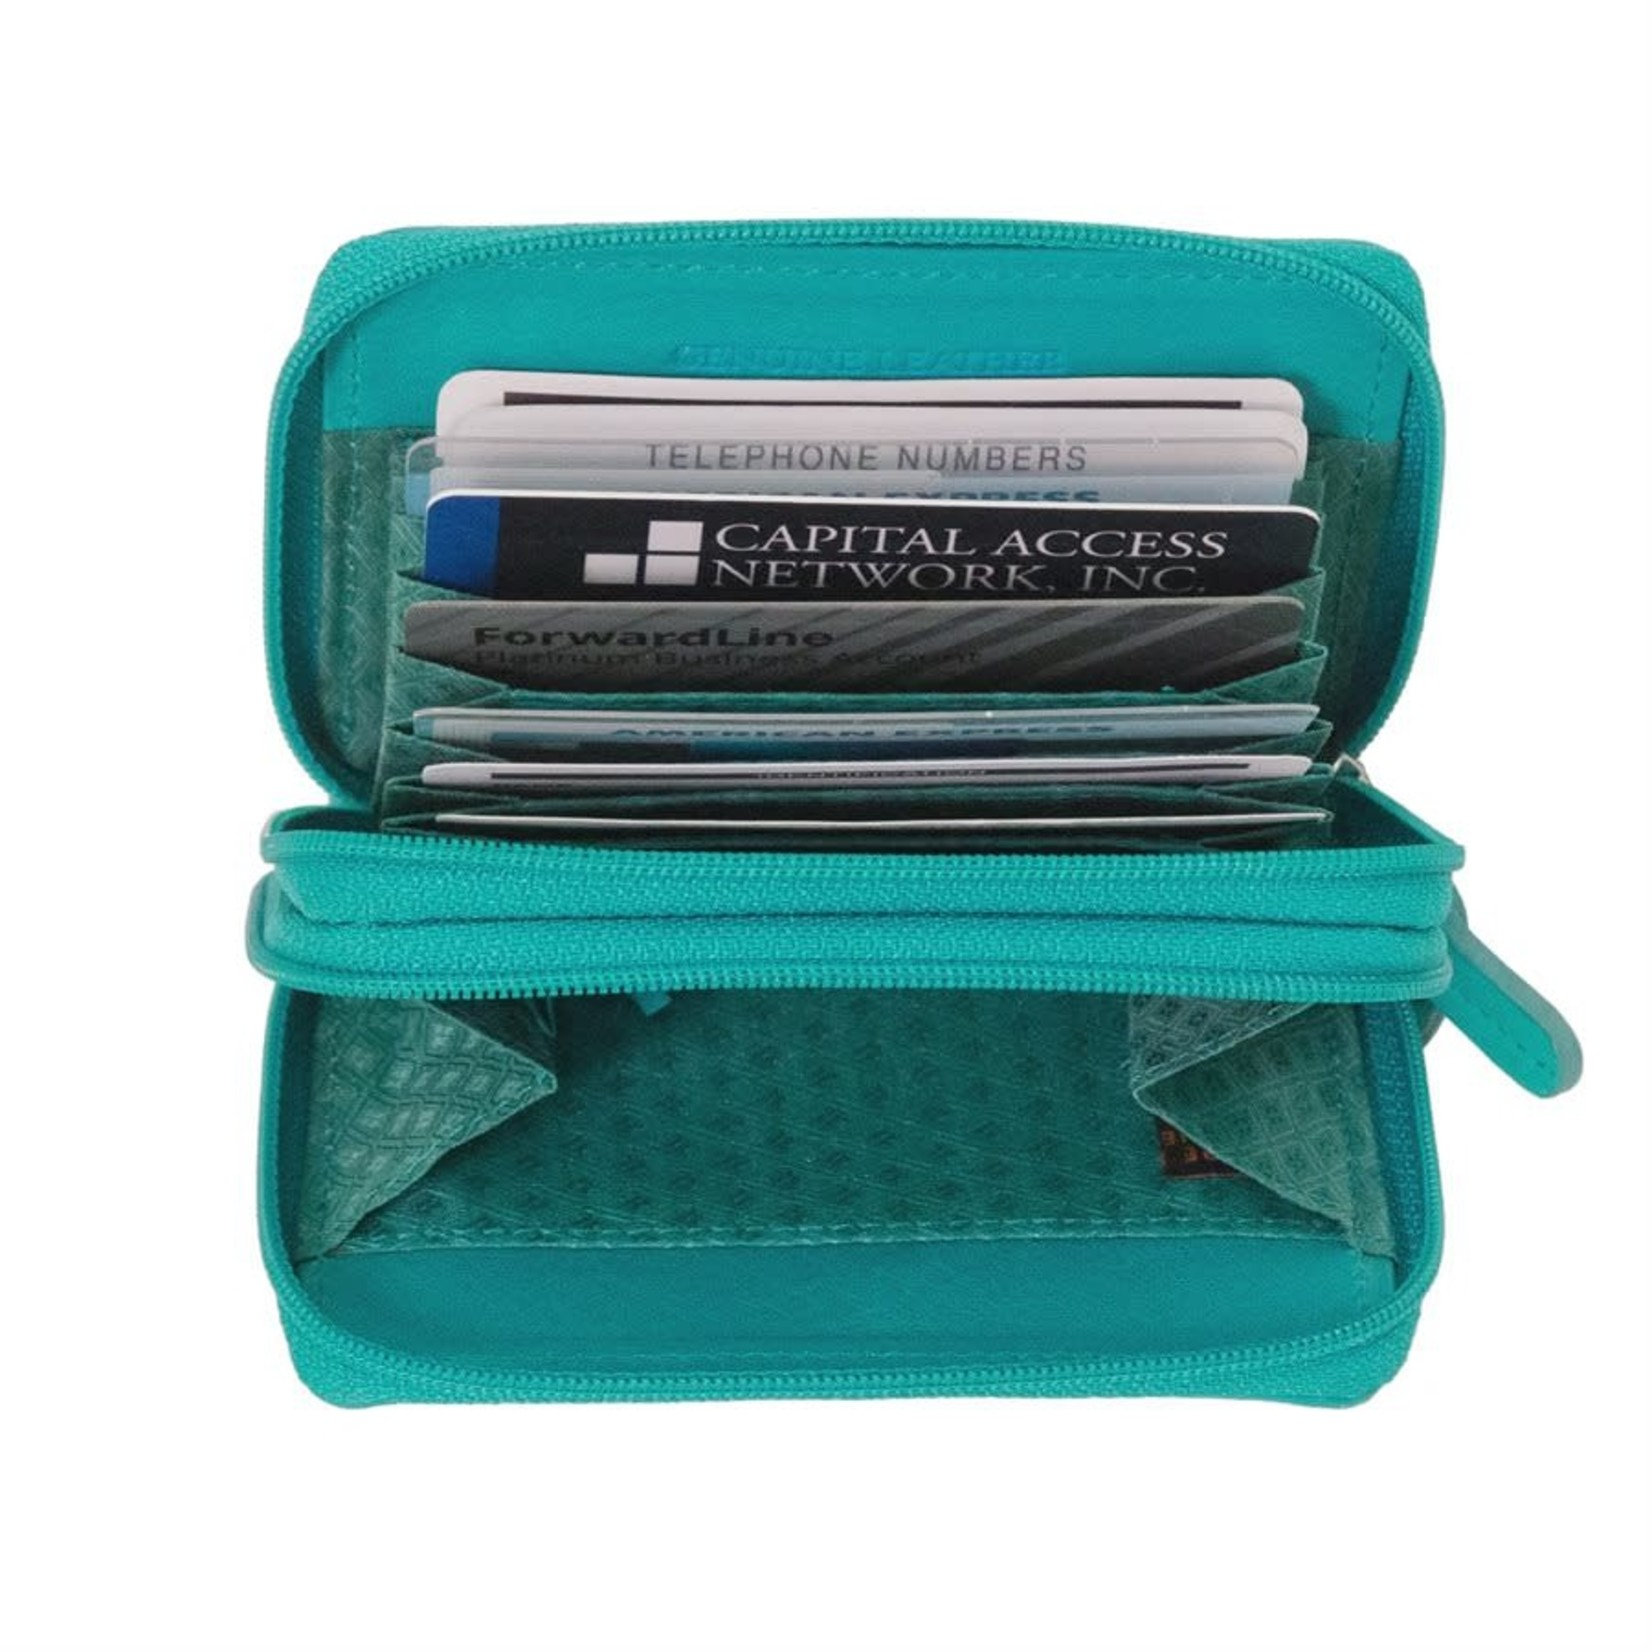 Leather Handbags and Accessories 6714 Silver - RFID Double Zip Accordion Card Holder